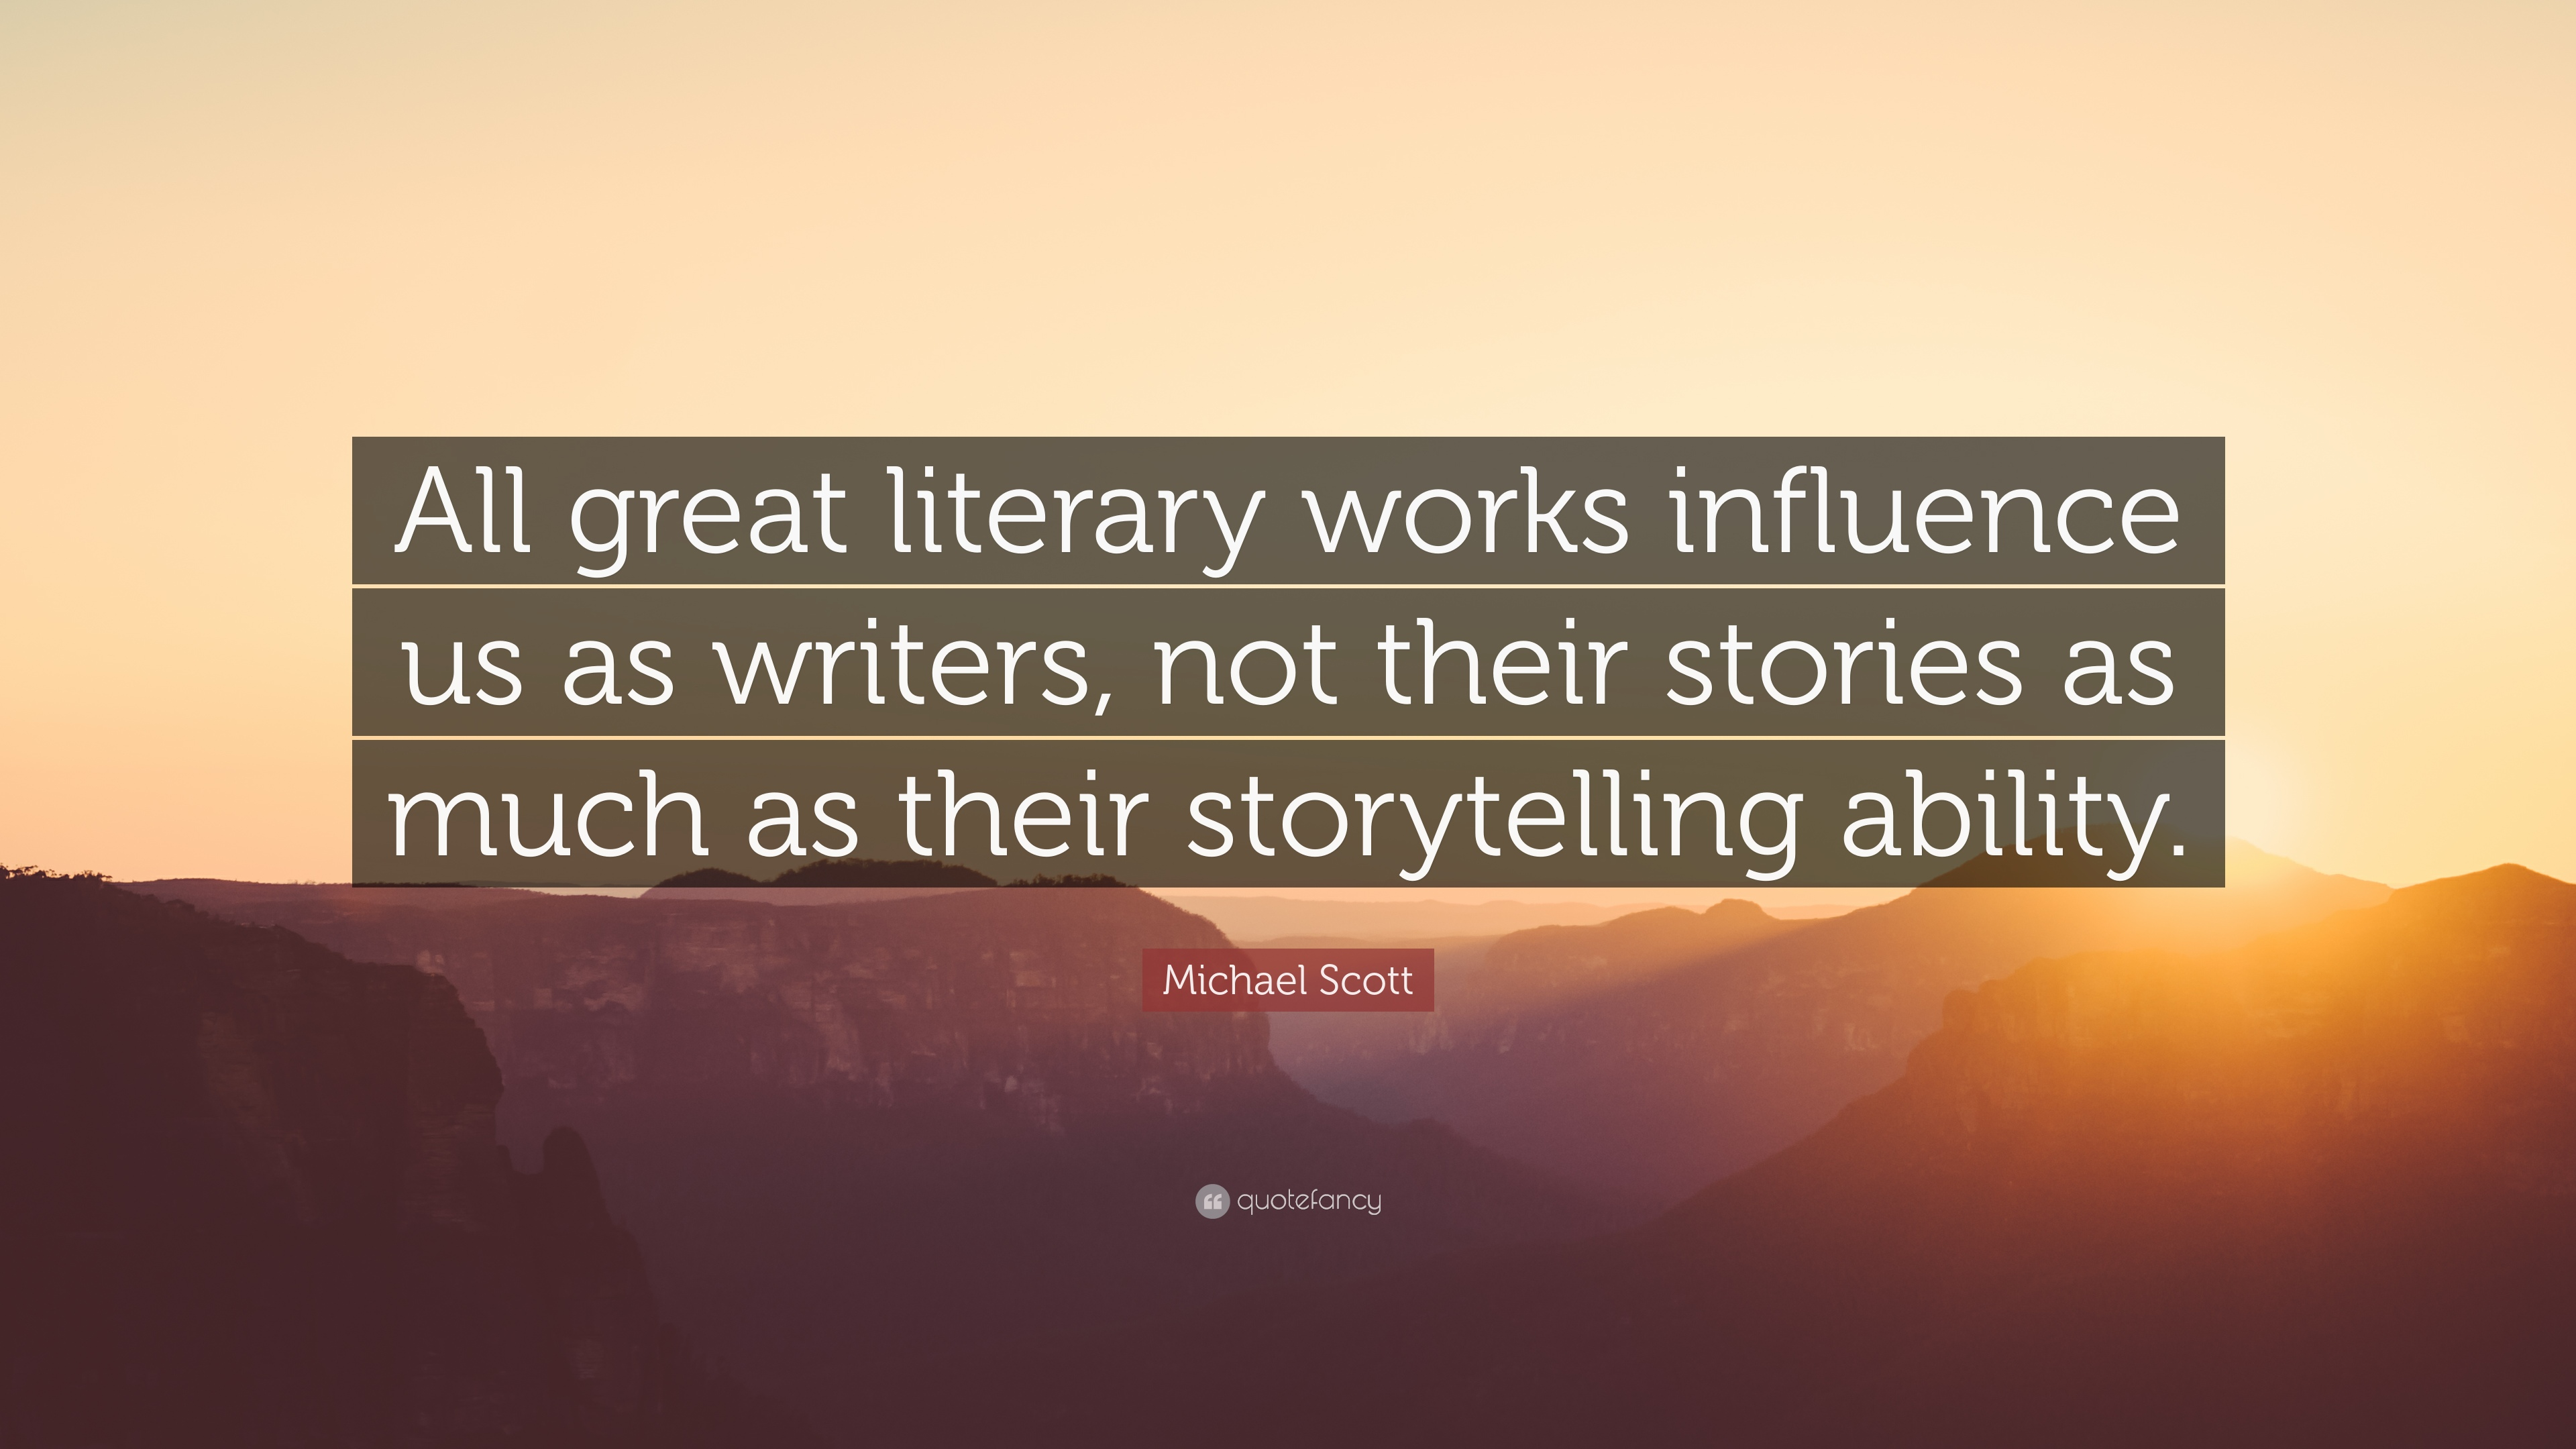 Authors experiences their effect on